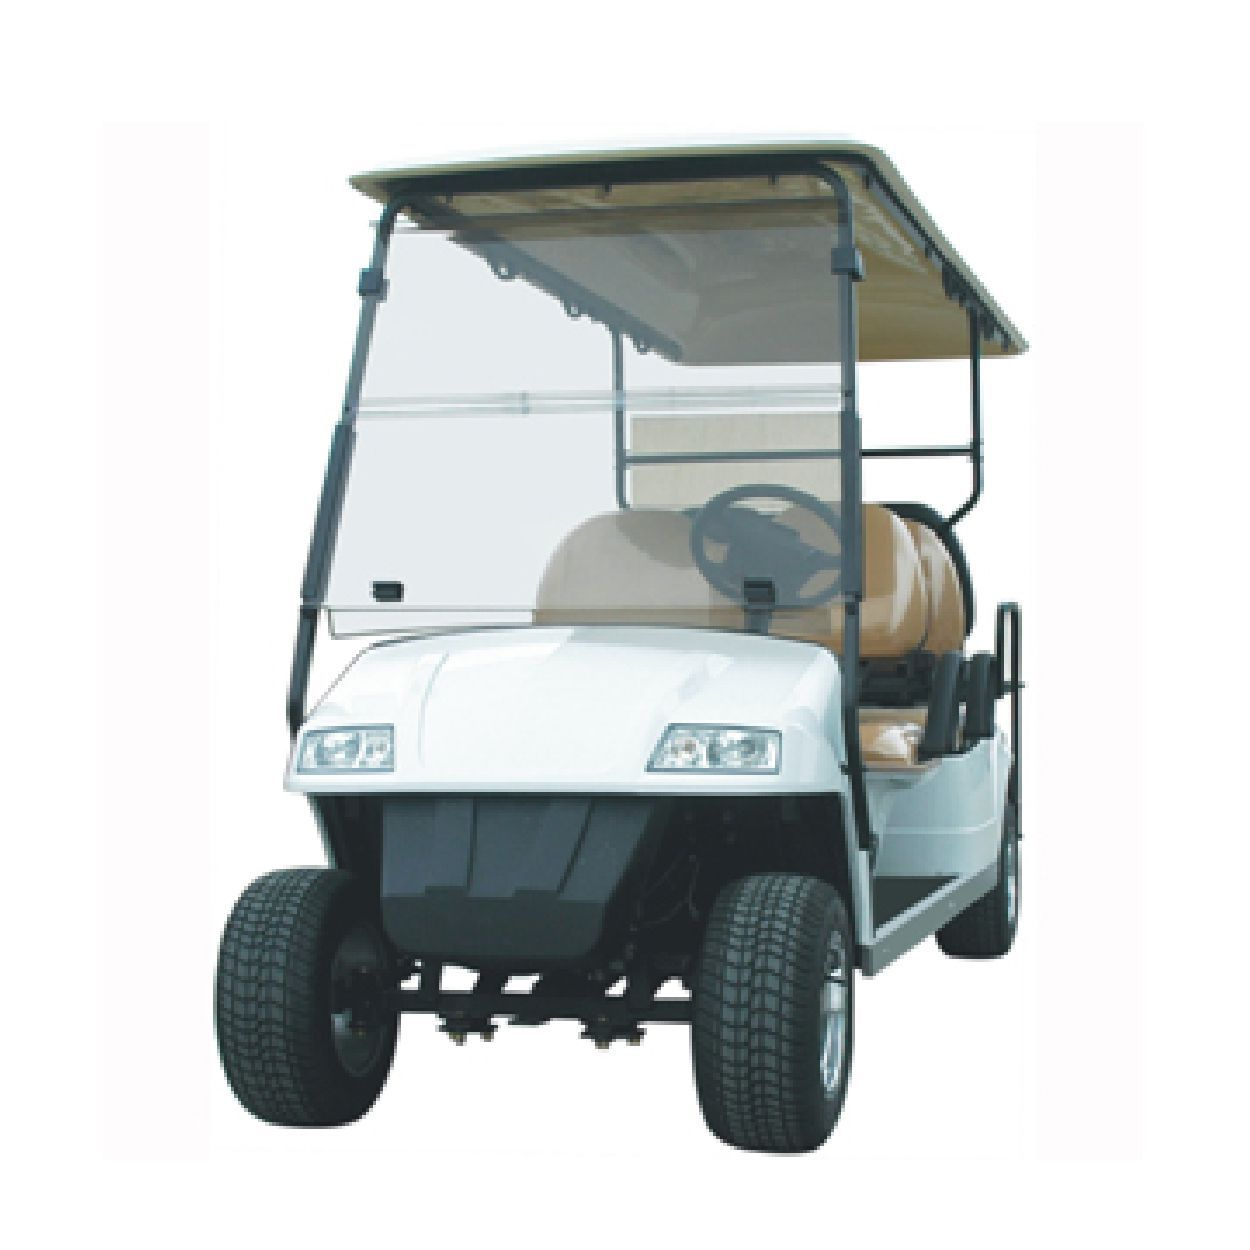 Buggy Eagle 2048T 01 - Xe Ô Tô Buggy Eagle 2048T